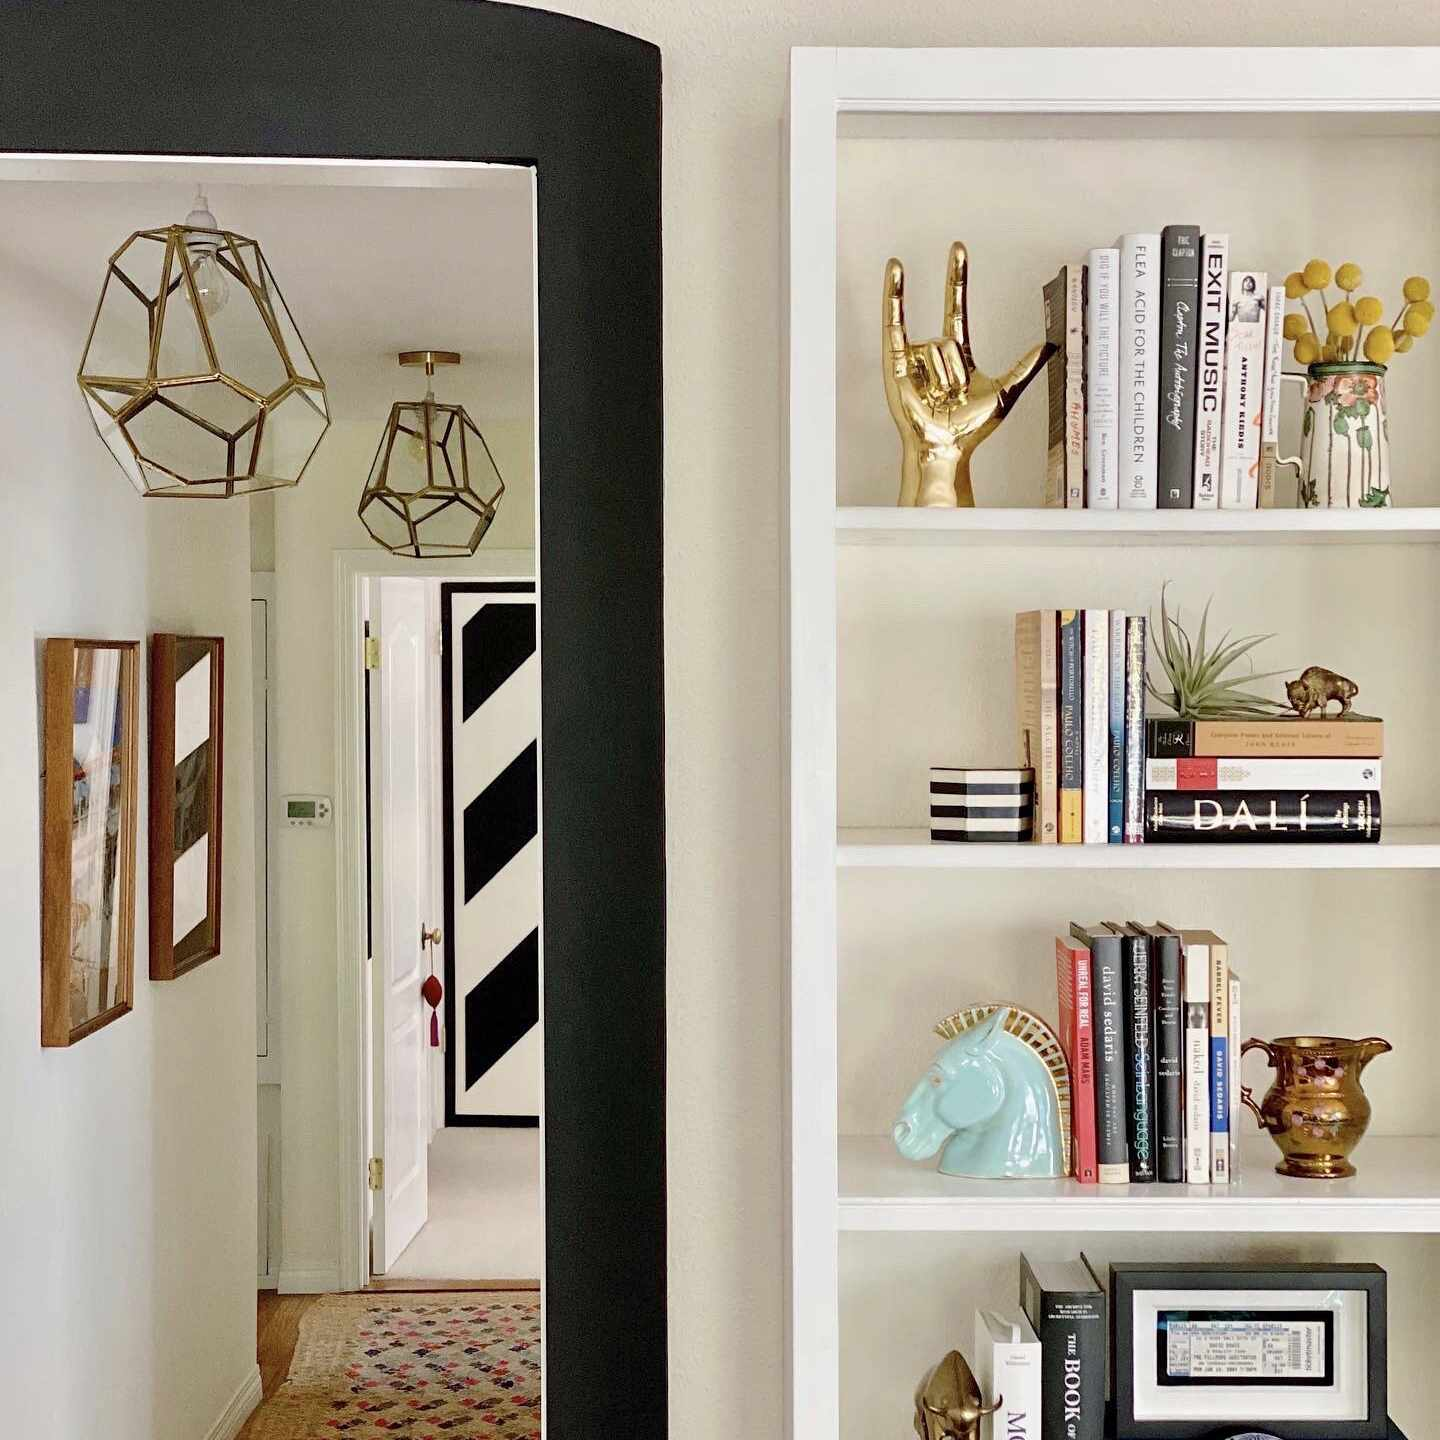 bookshelf with different knick knacks used as bookends